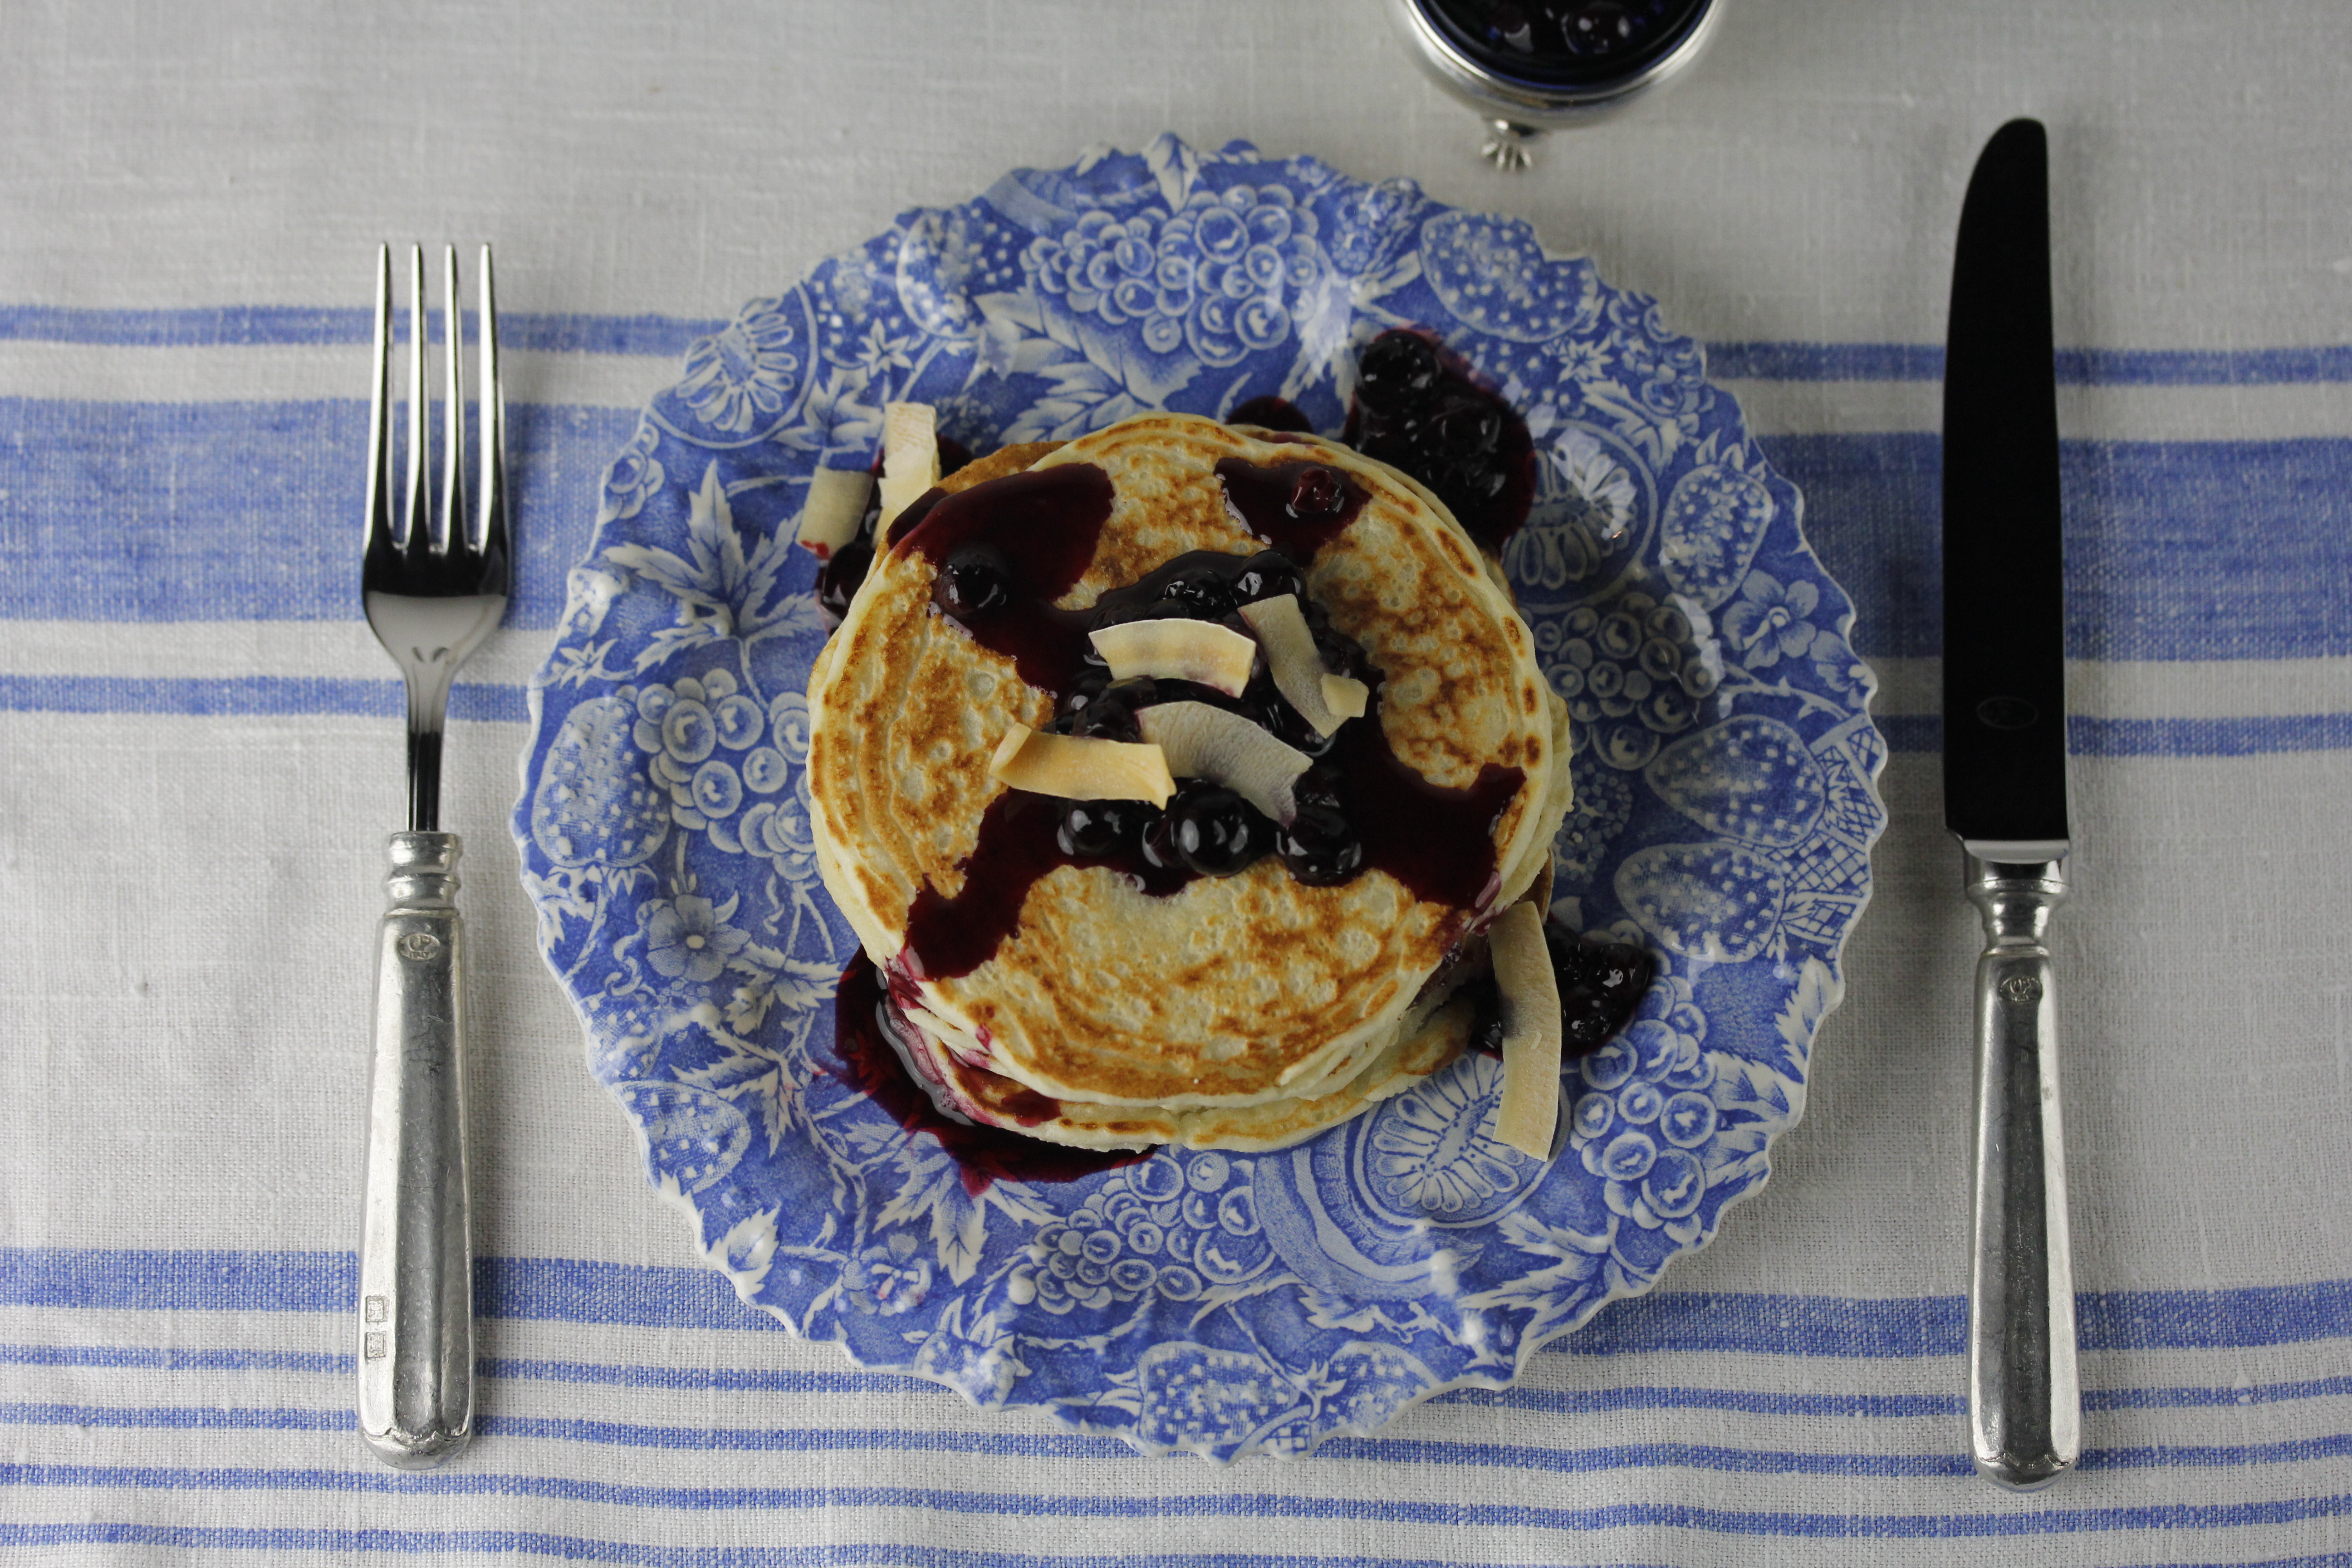 Coconut Pancakes with Blueberries